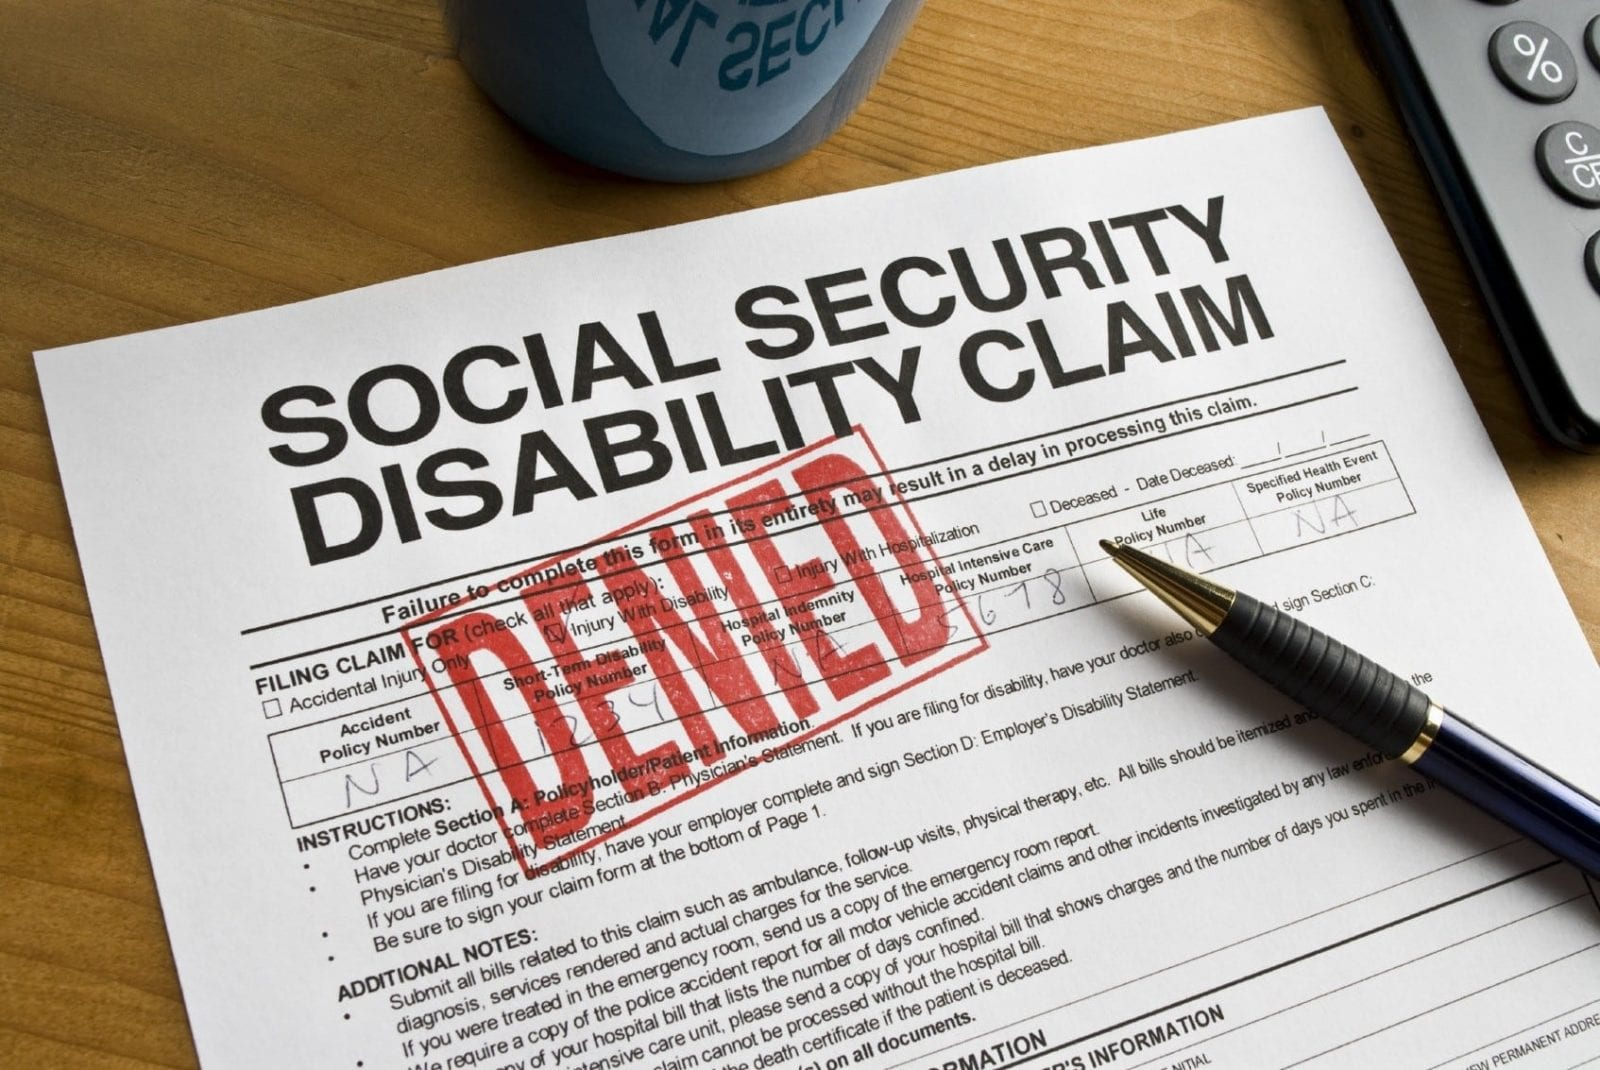 Denied Social Security Disability Claim Form